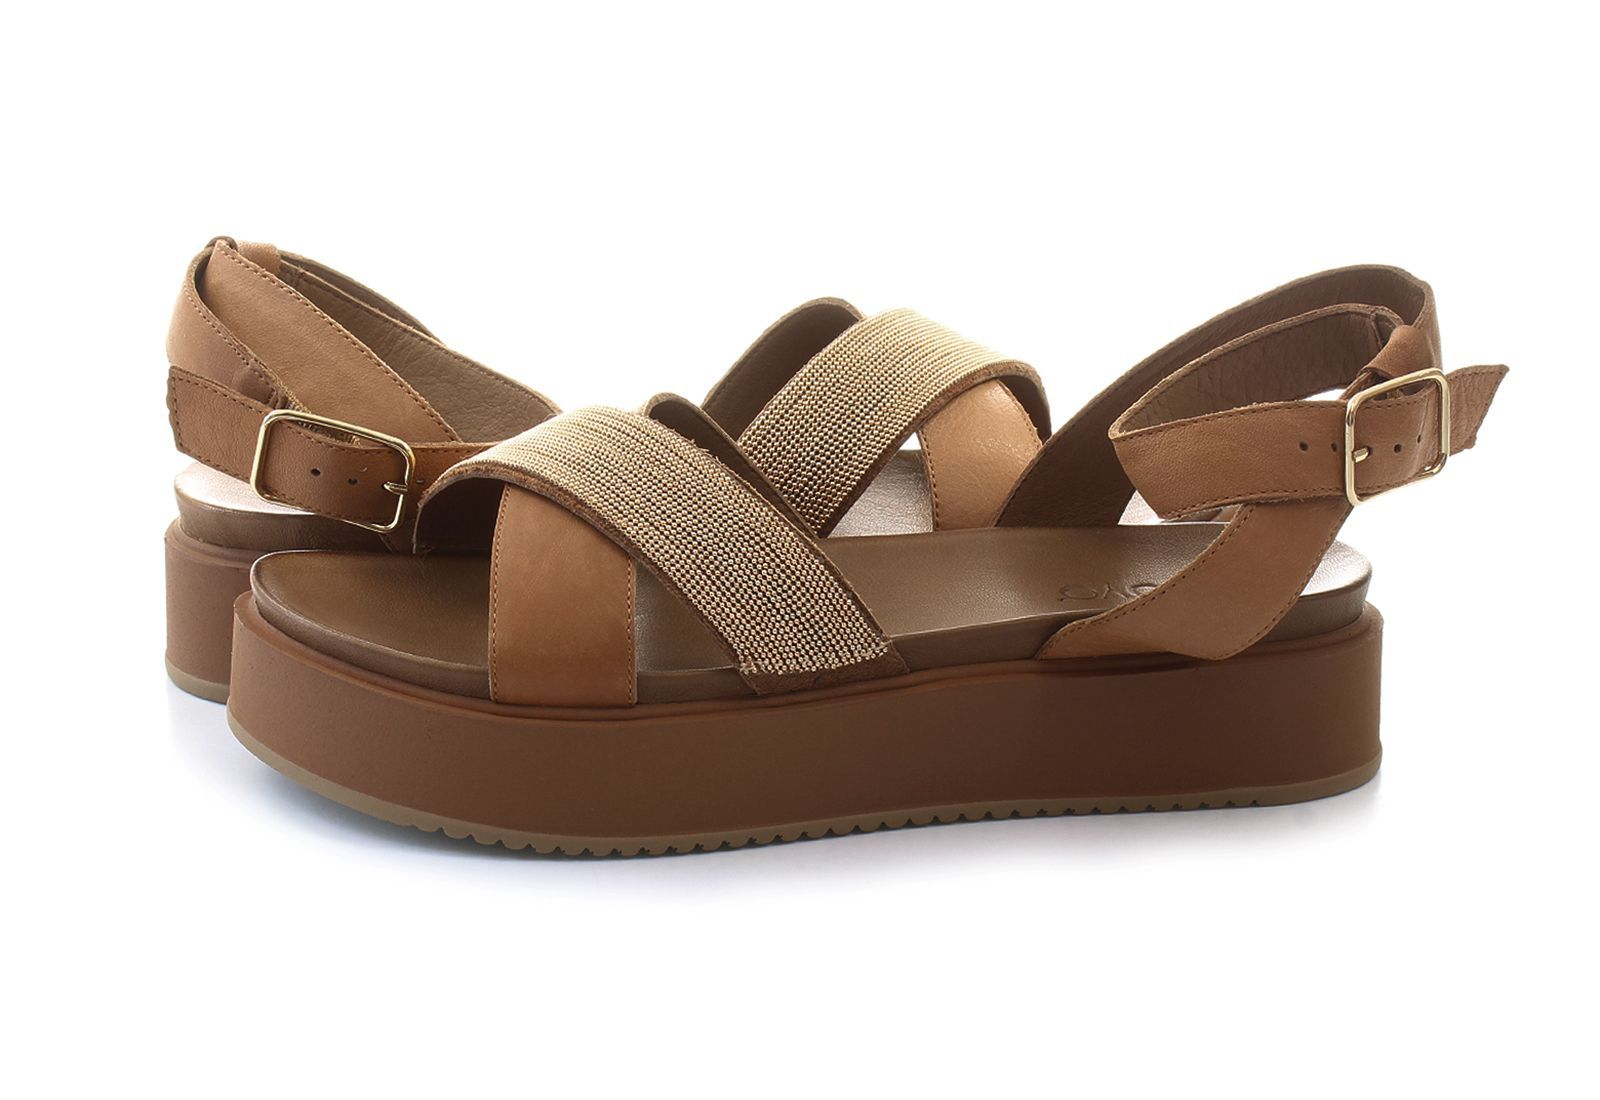 SHOP SANDALS NOW! s of Styles. Birkenstock, Athletic, Flip-Flops, Slides, Wedges and more + FREE SHIPPING BOTH WAYS. Fast Delivery & 24/7 Customer Service.